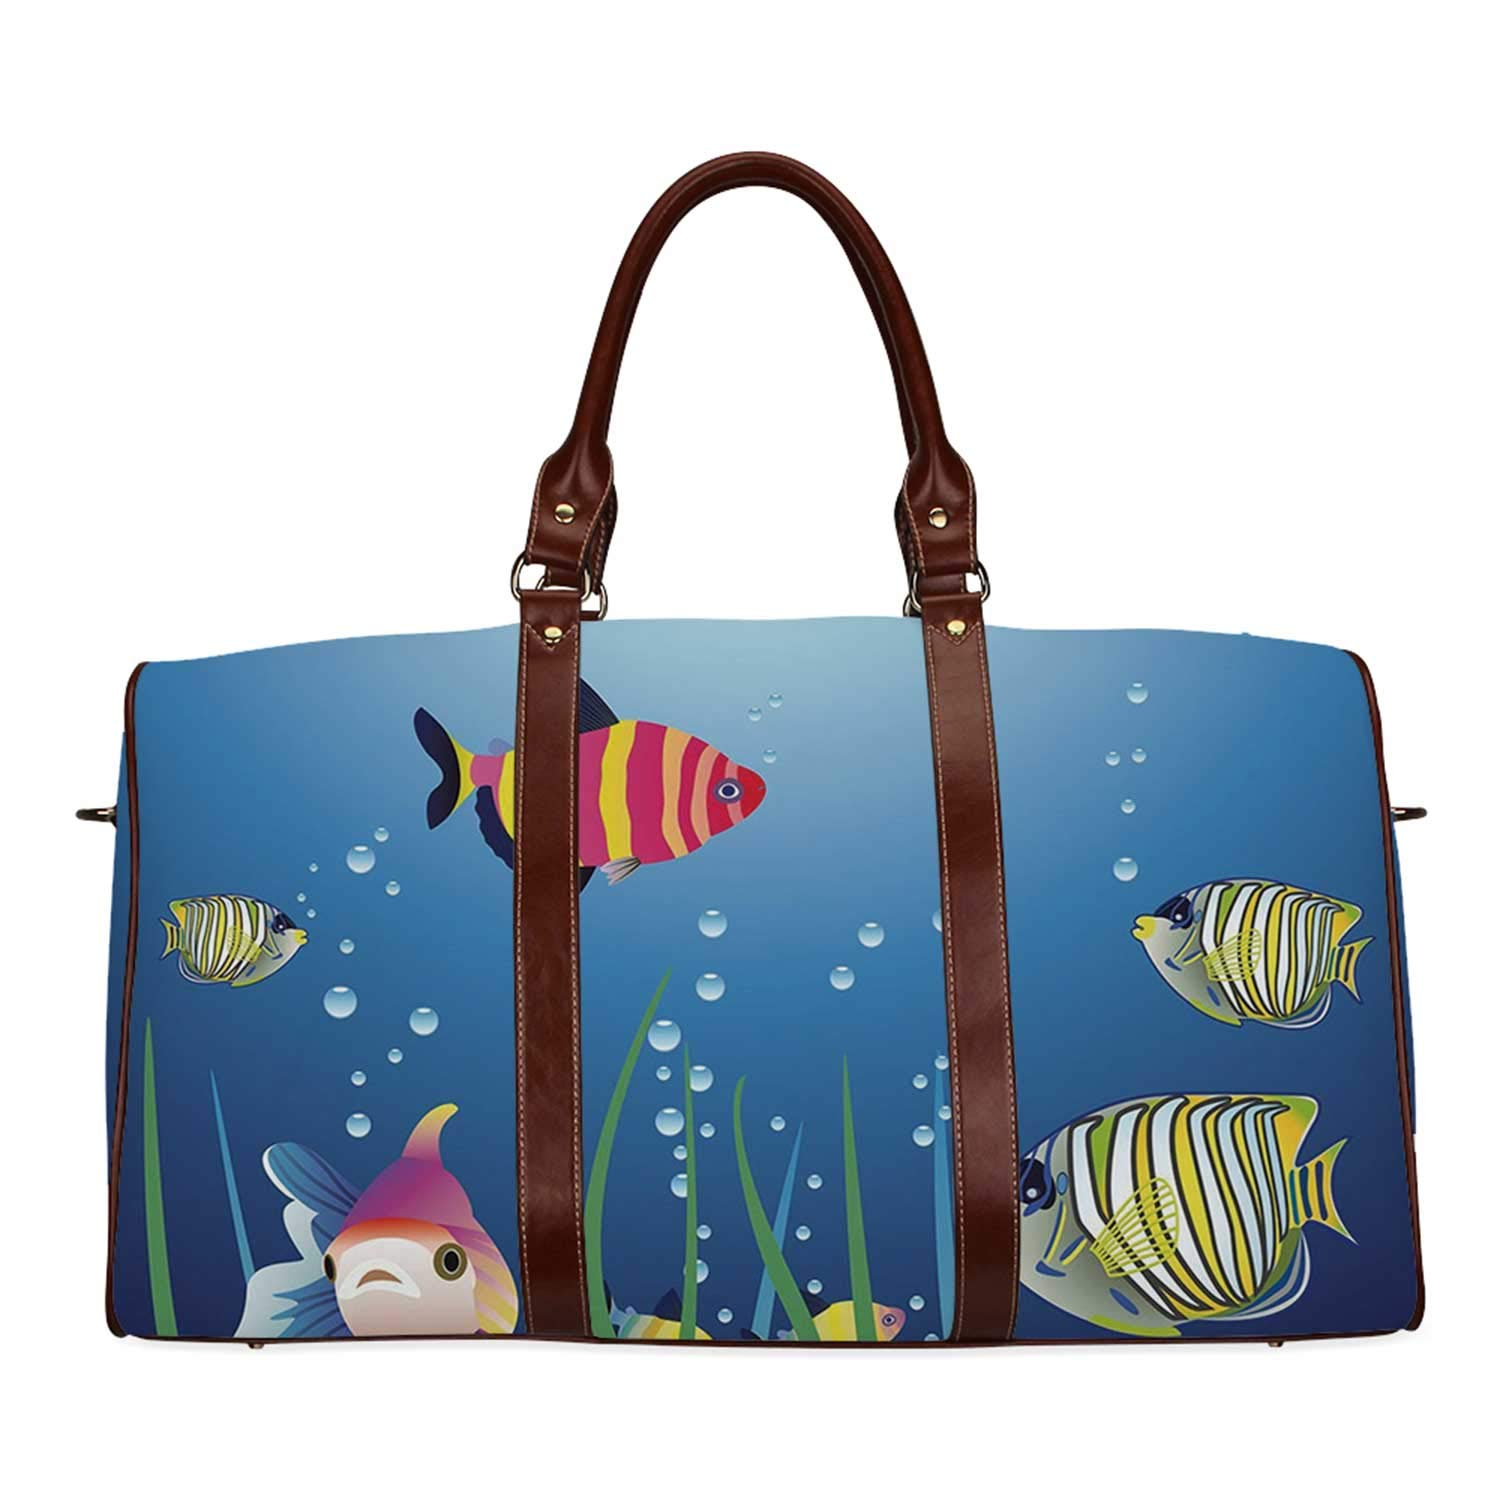 Aquarium Practicality Travel Bag,Aquarium Seascape with Colorful Tropical Fishes Bubbles Seaweed Marine Theme Decorative for School,20.8''L x 12''W x 9.8''H by YOLIYANA